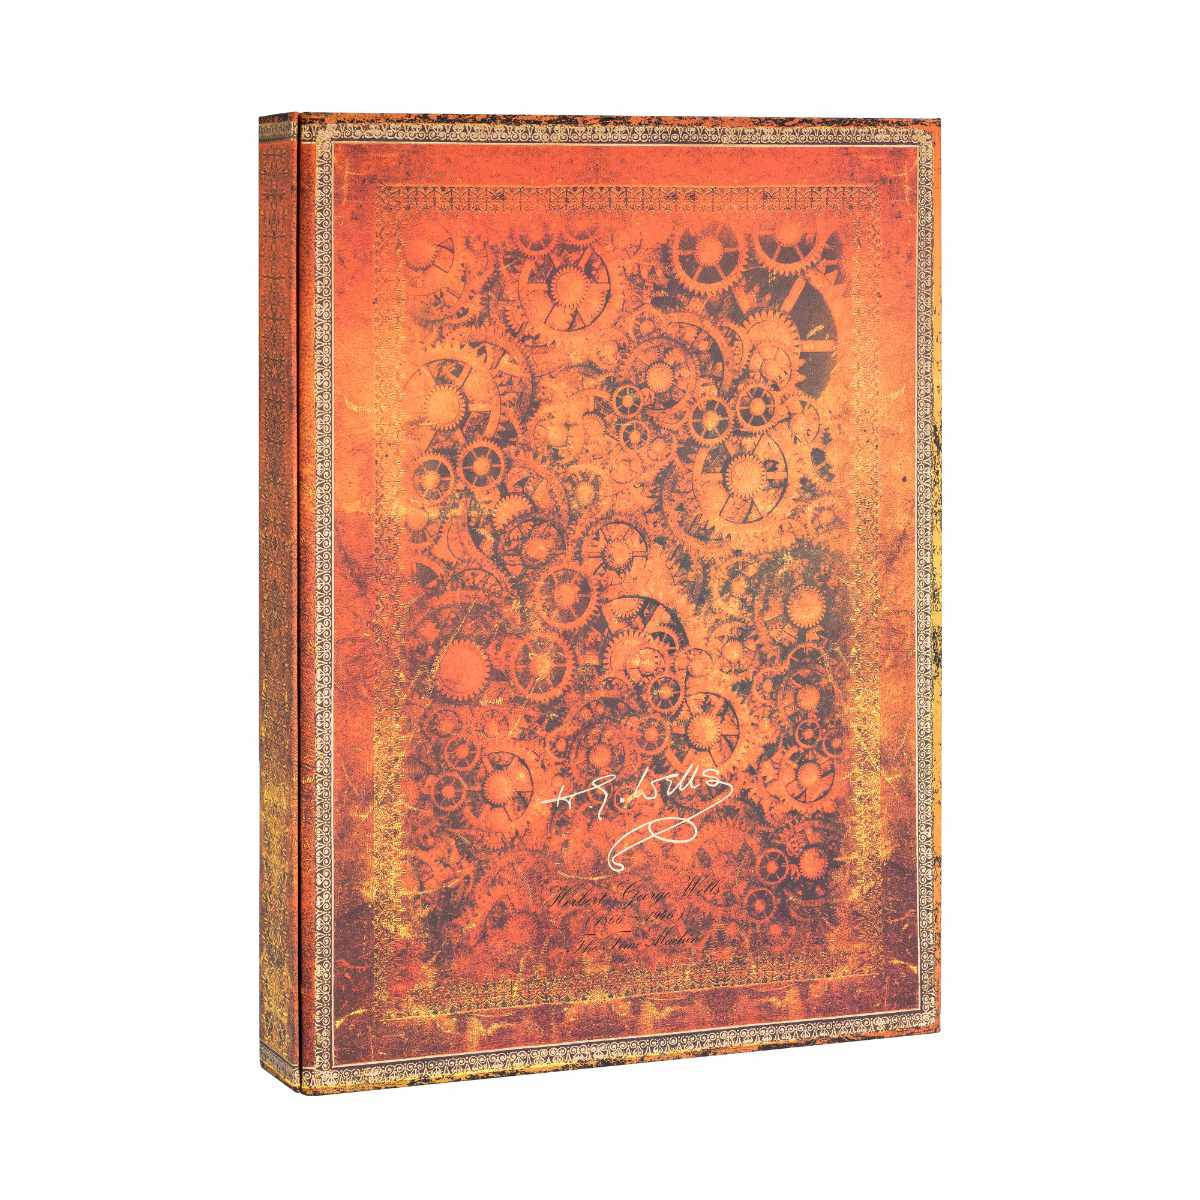 Paperblanks Special Editions H.G. Wells Manuscript Box